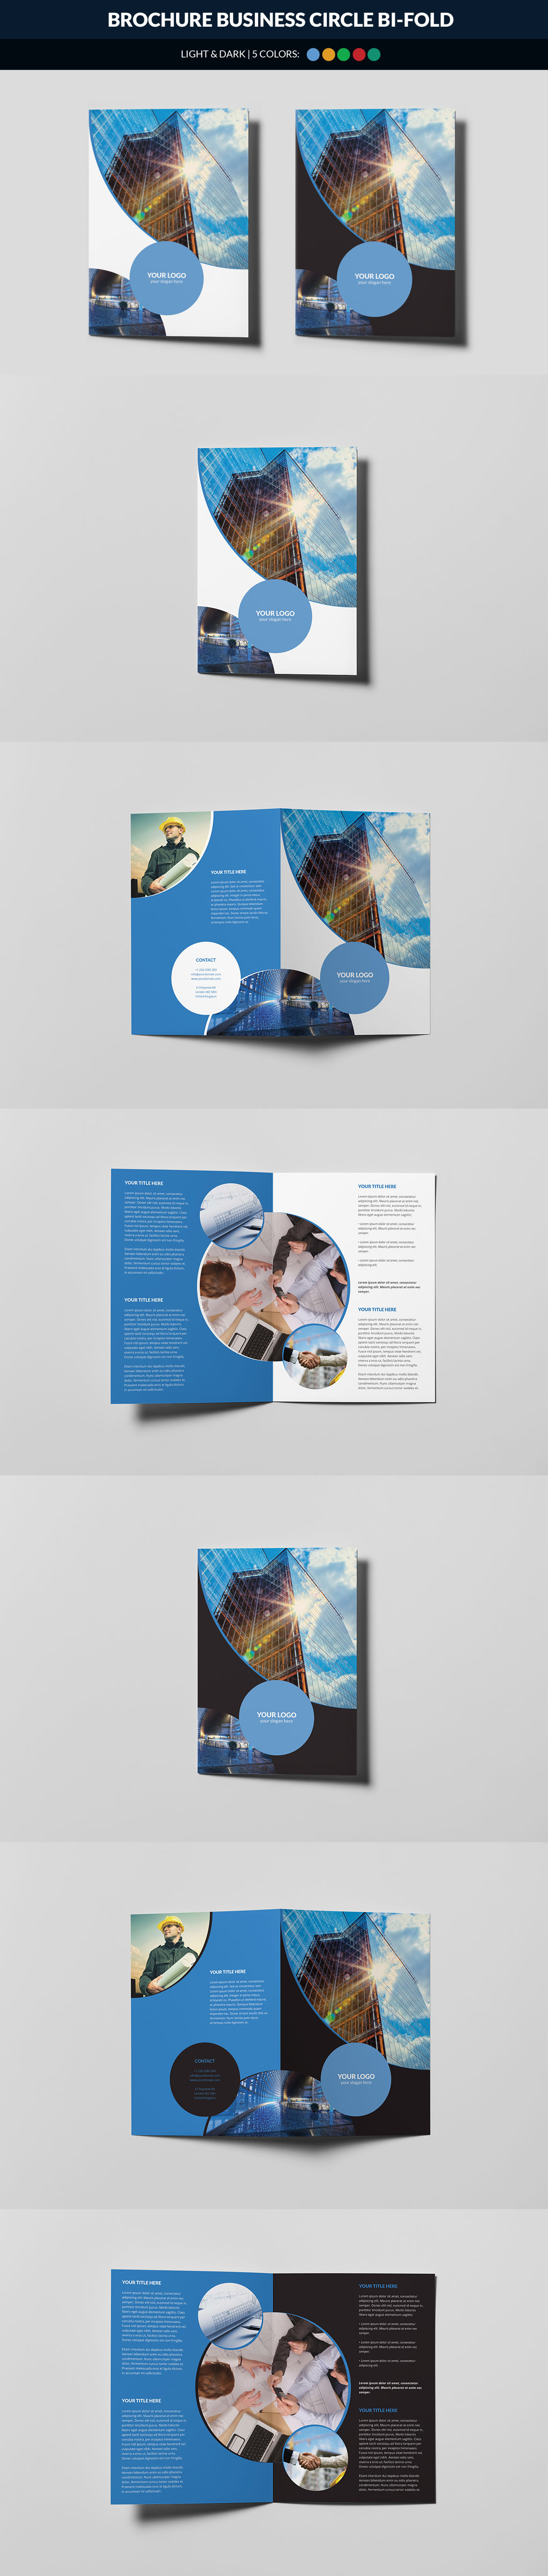 business circle bi fold brochure template psd unlimited downloads